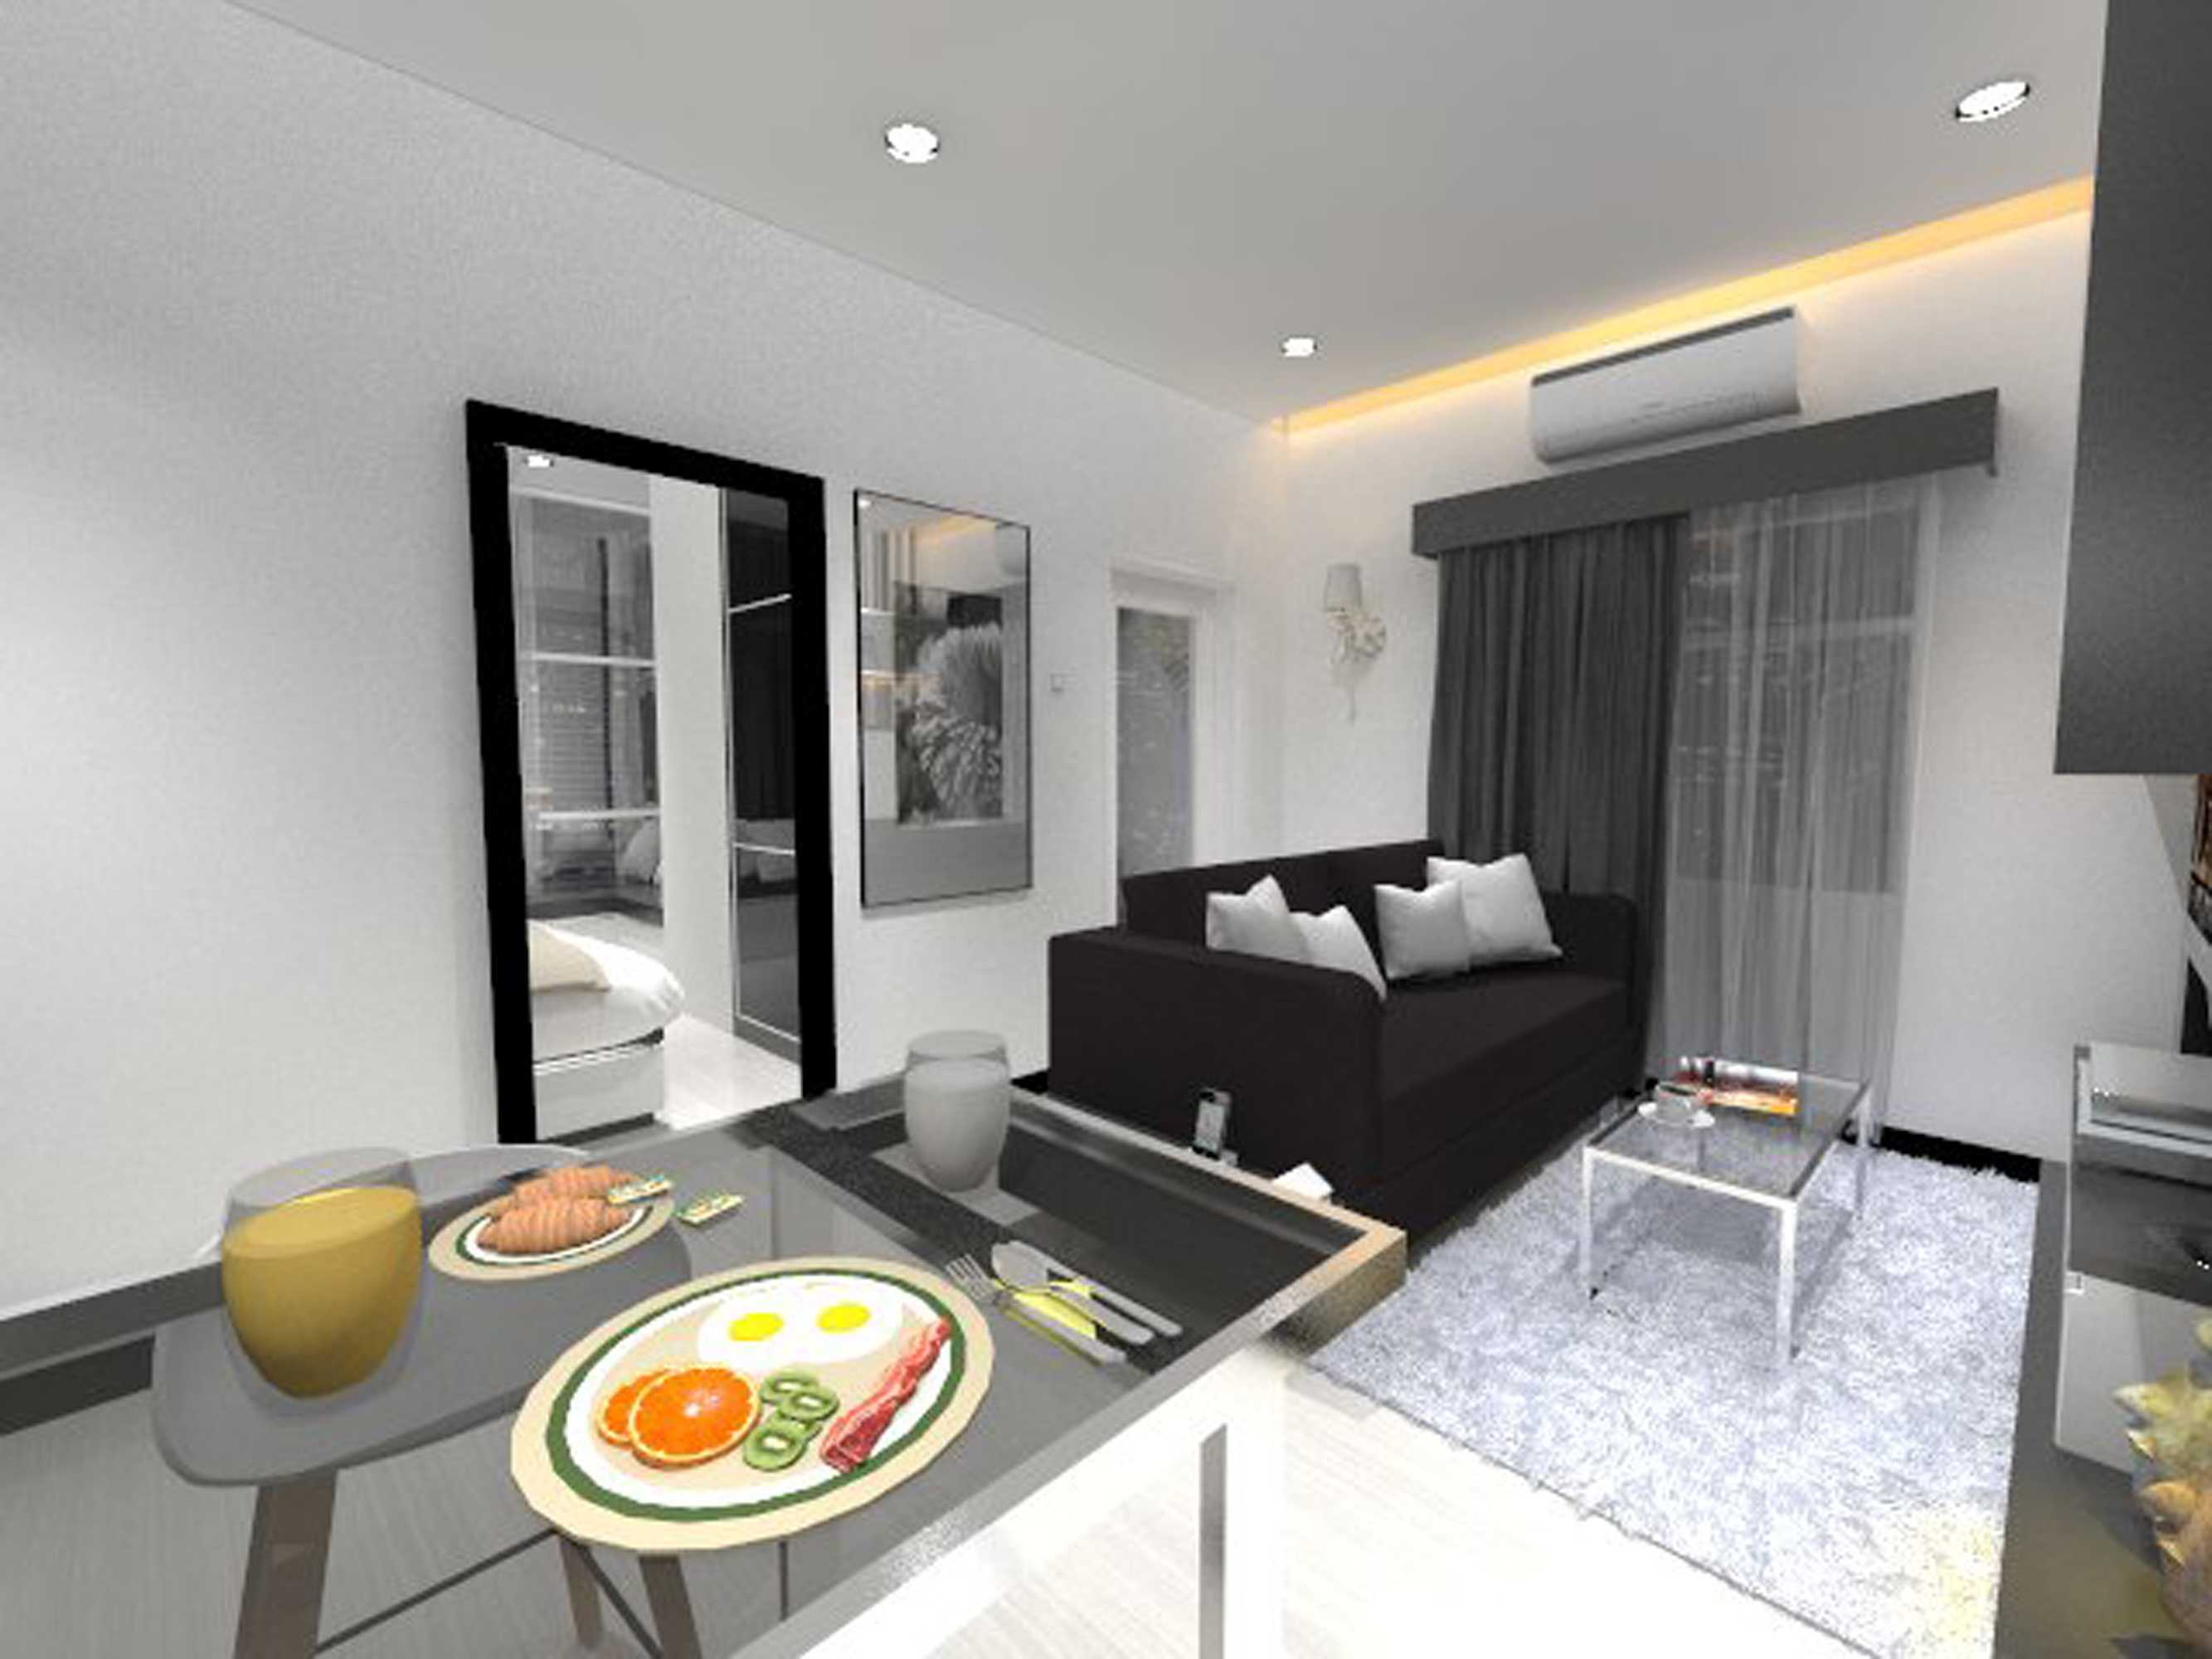 Andreyas Apartment 2 Bedroom Asia Afrika Apartment Asia Afrika Apartment Apartment-Asia-Afrika-Living-Room-3   23407